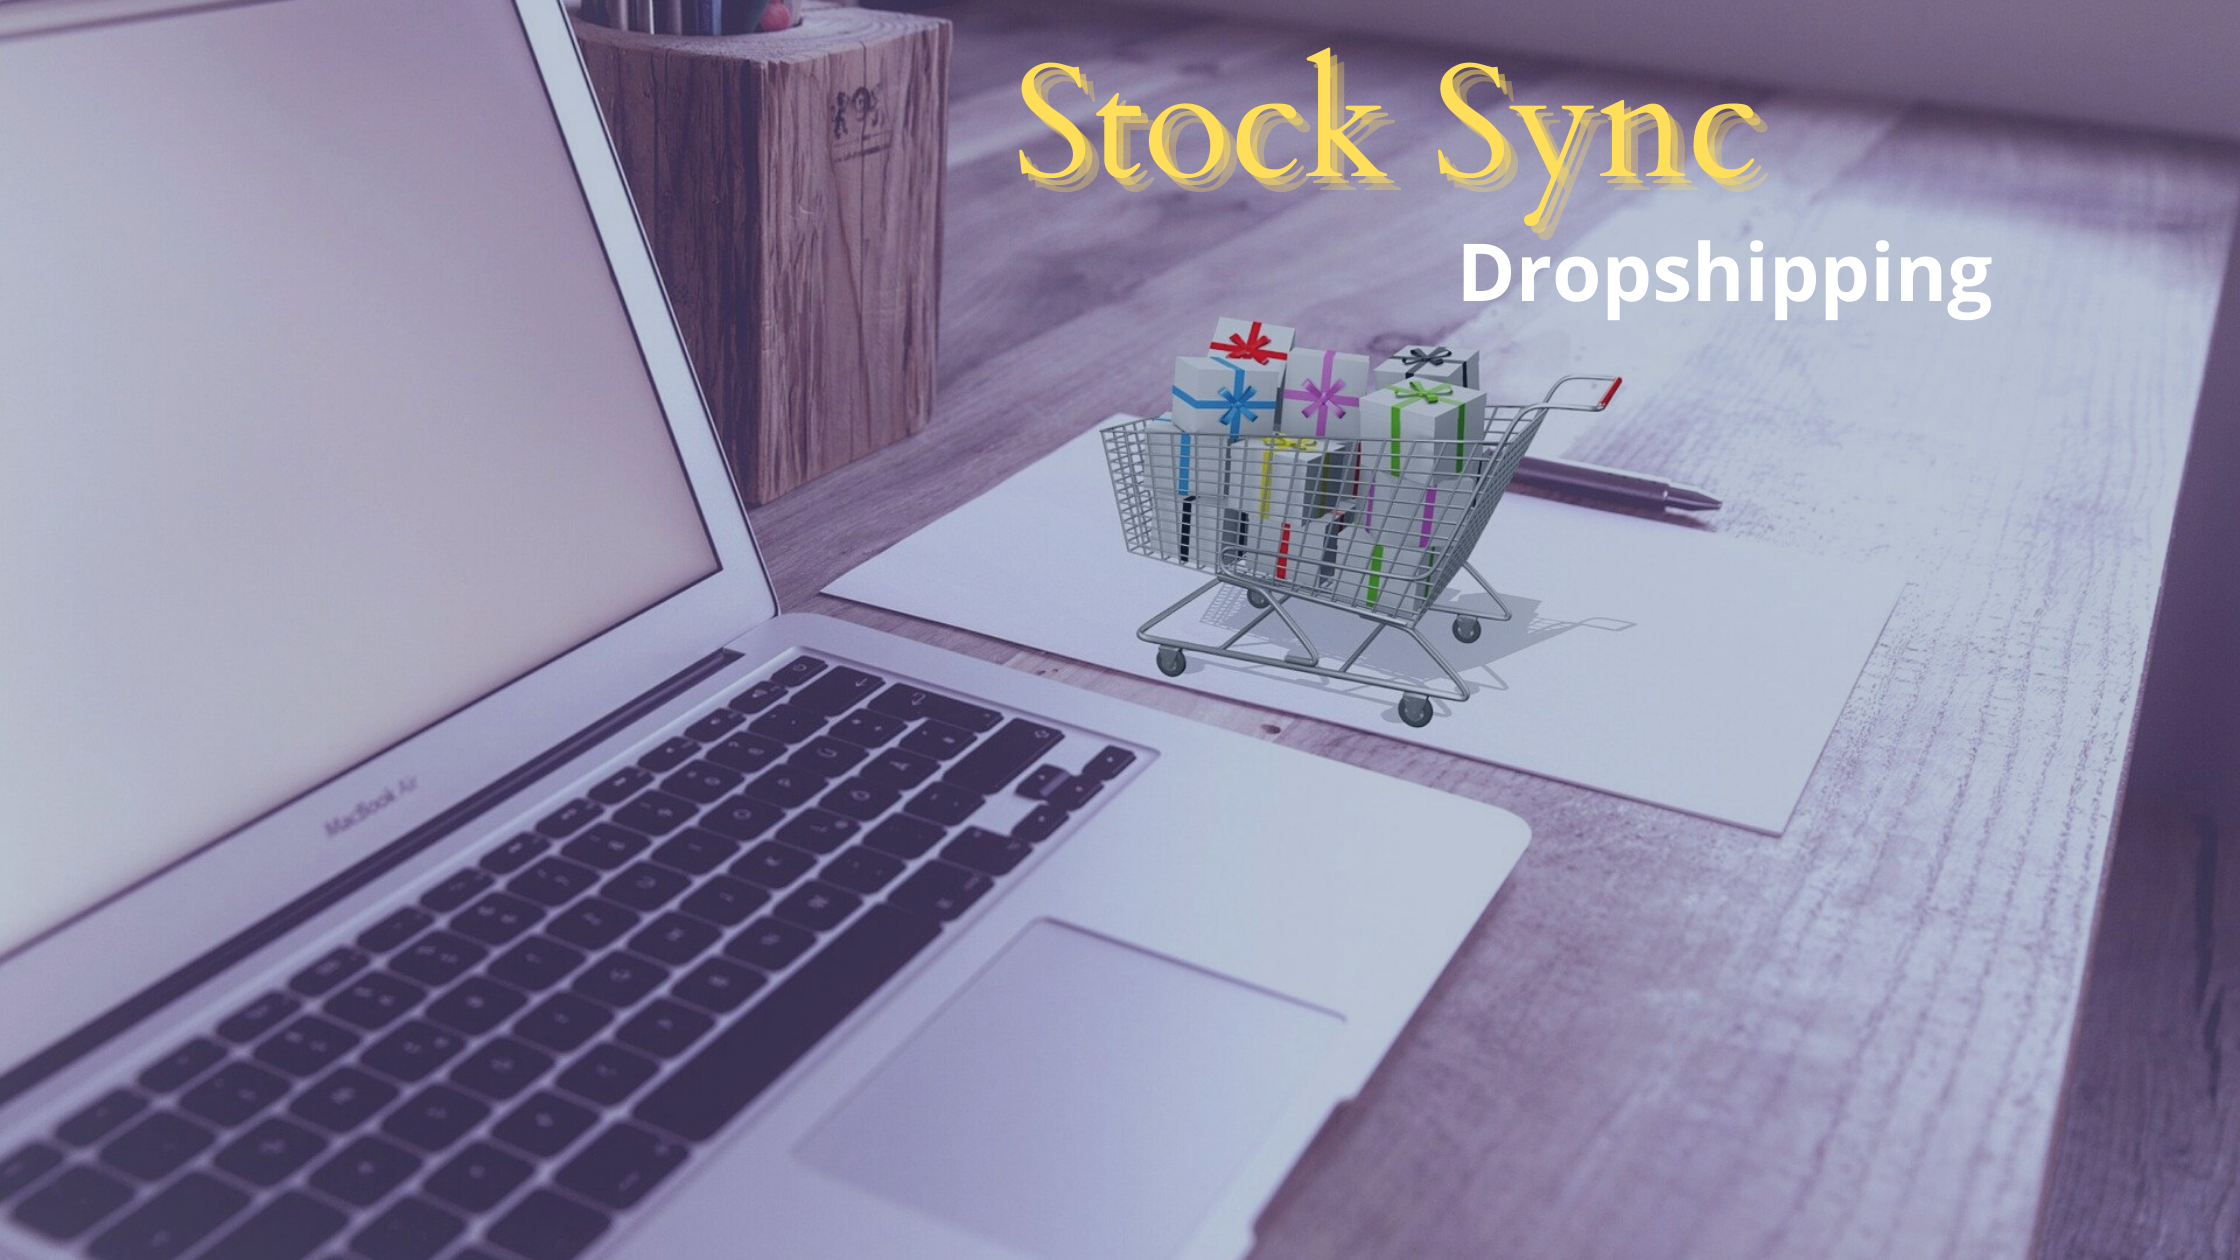 What is Stock Sync